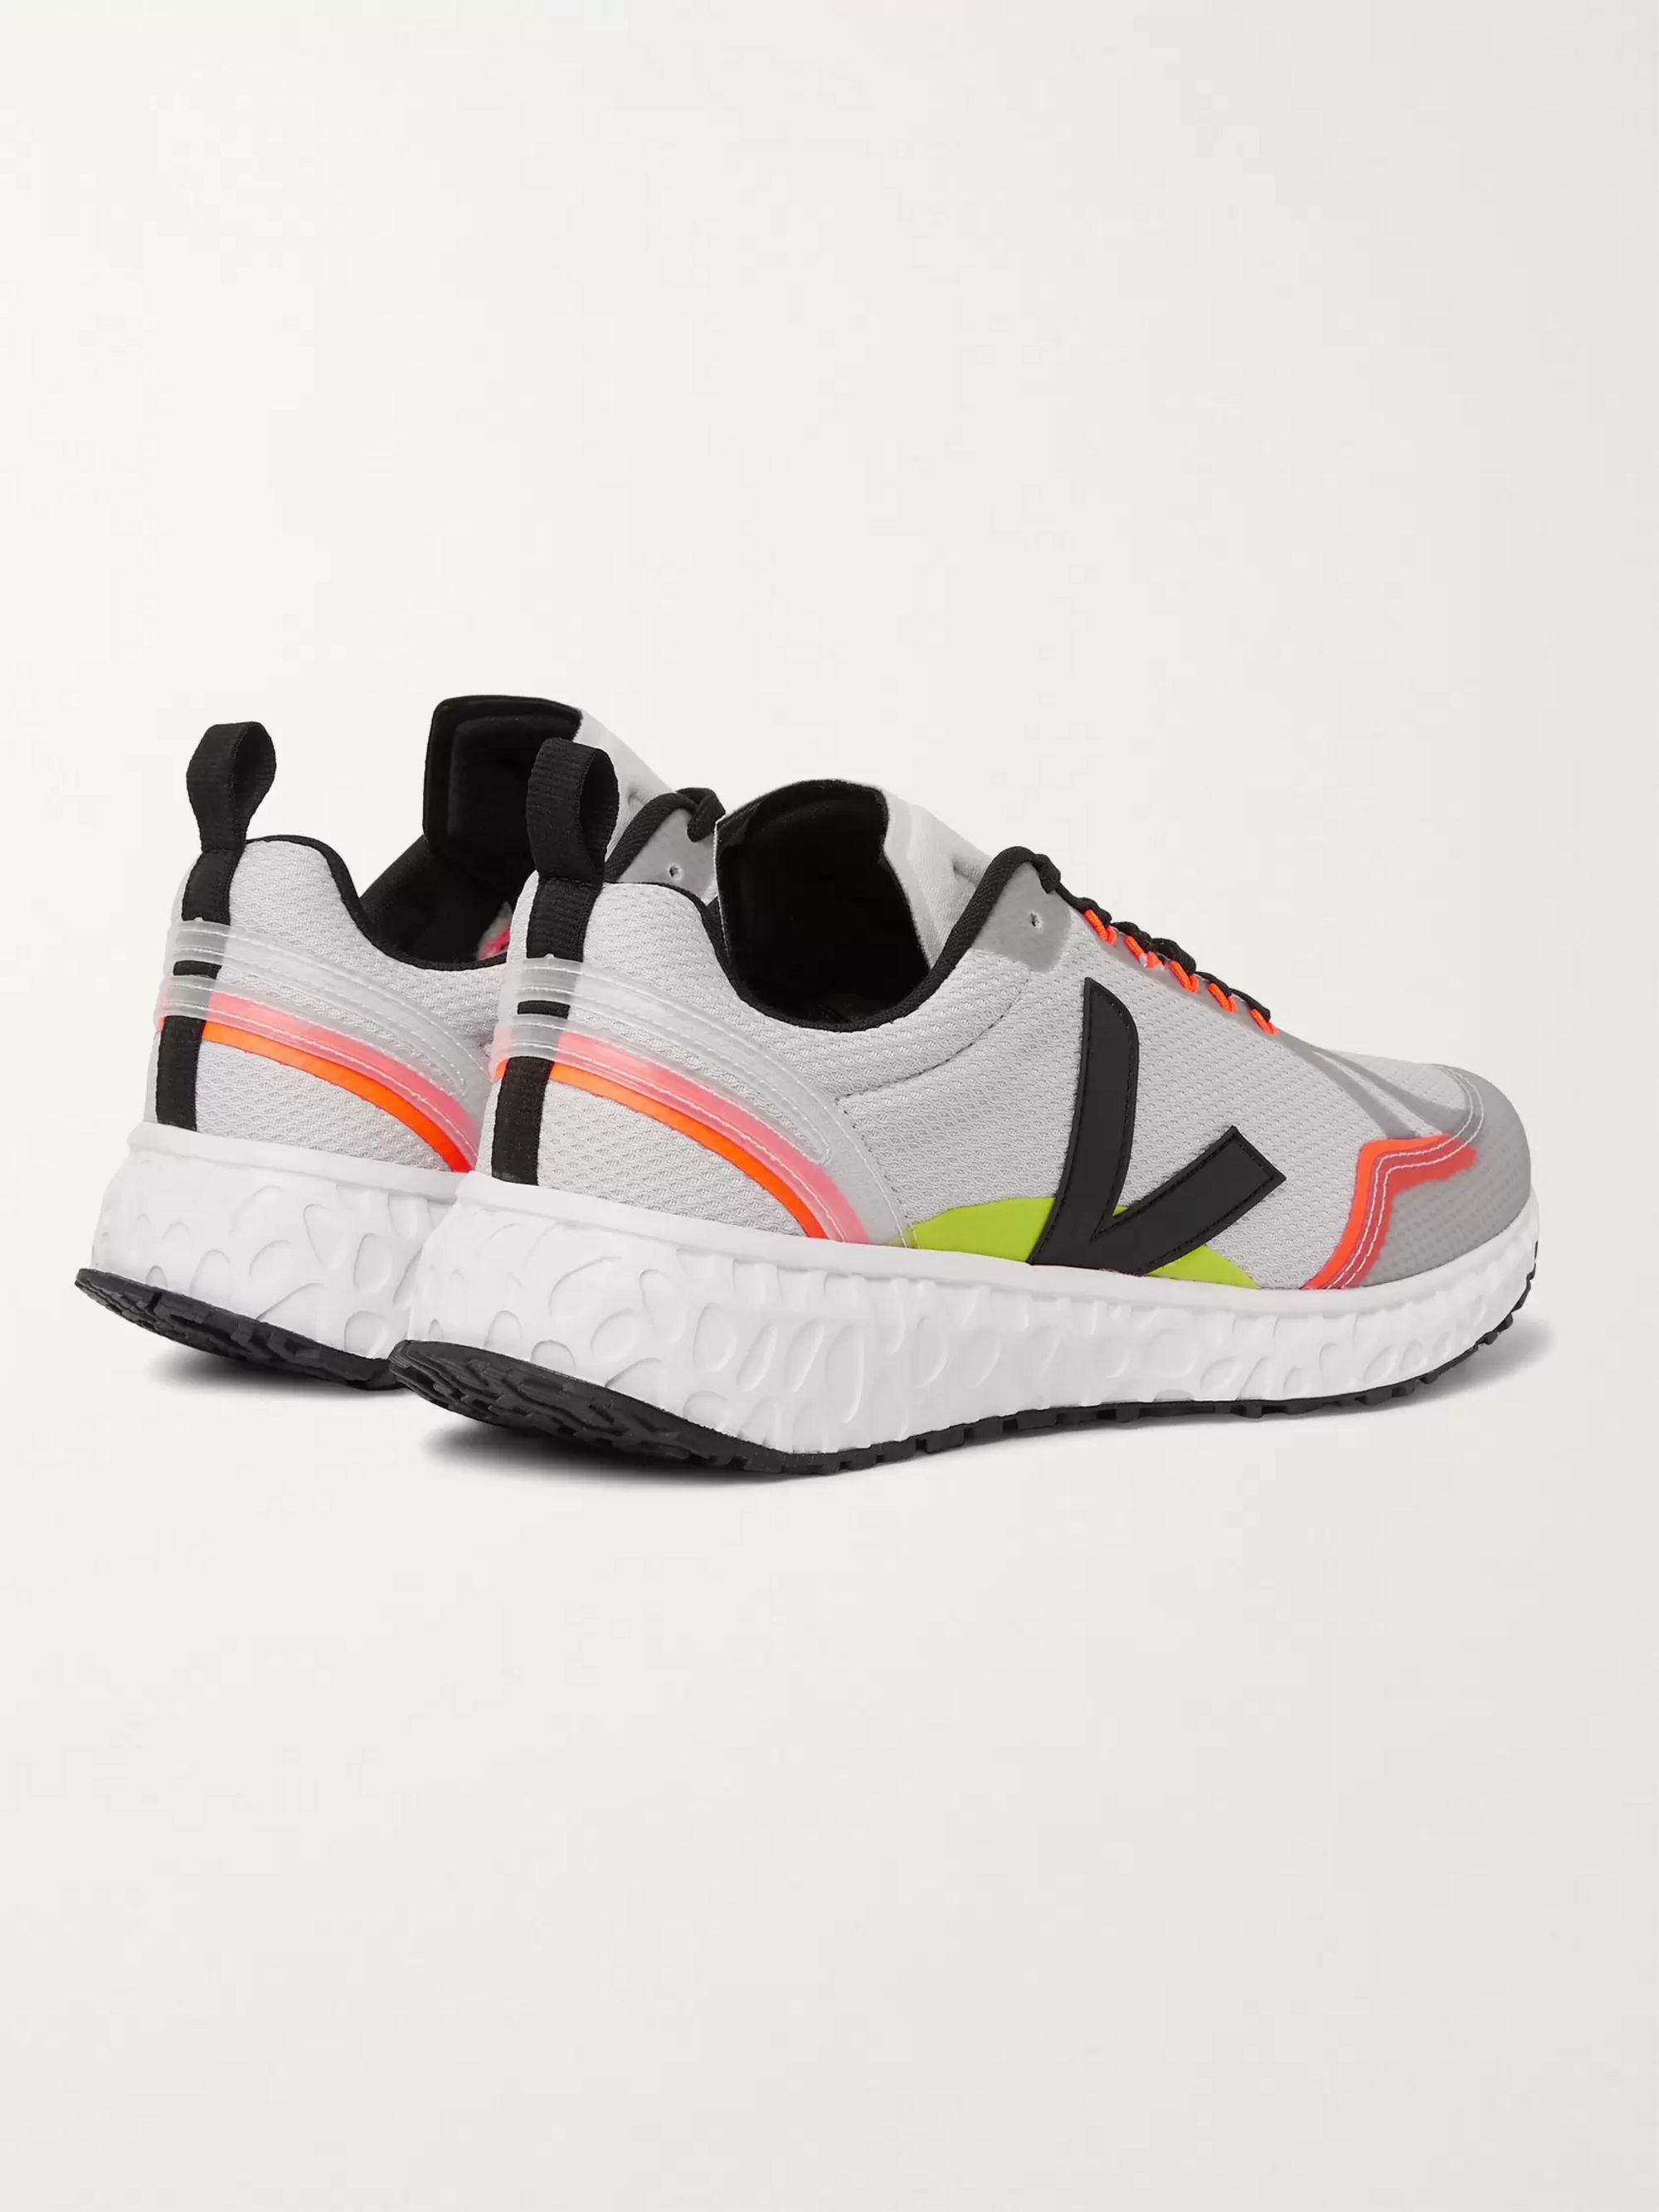 Veja Condor Rubber-Trimmed Mesh Running Sneakers